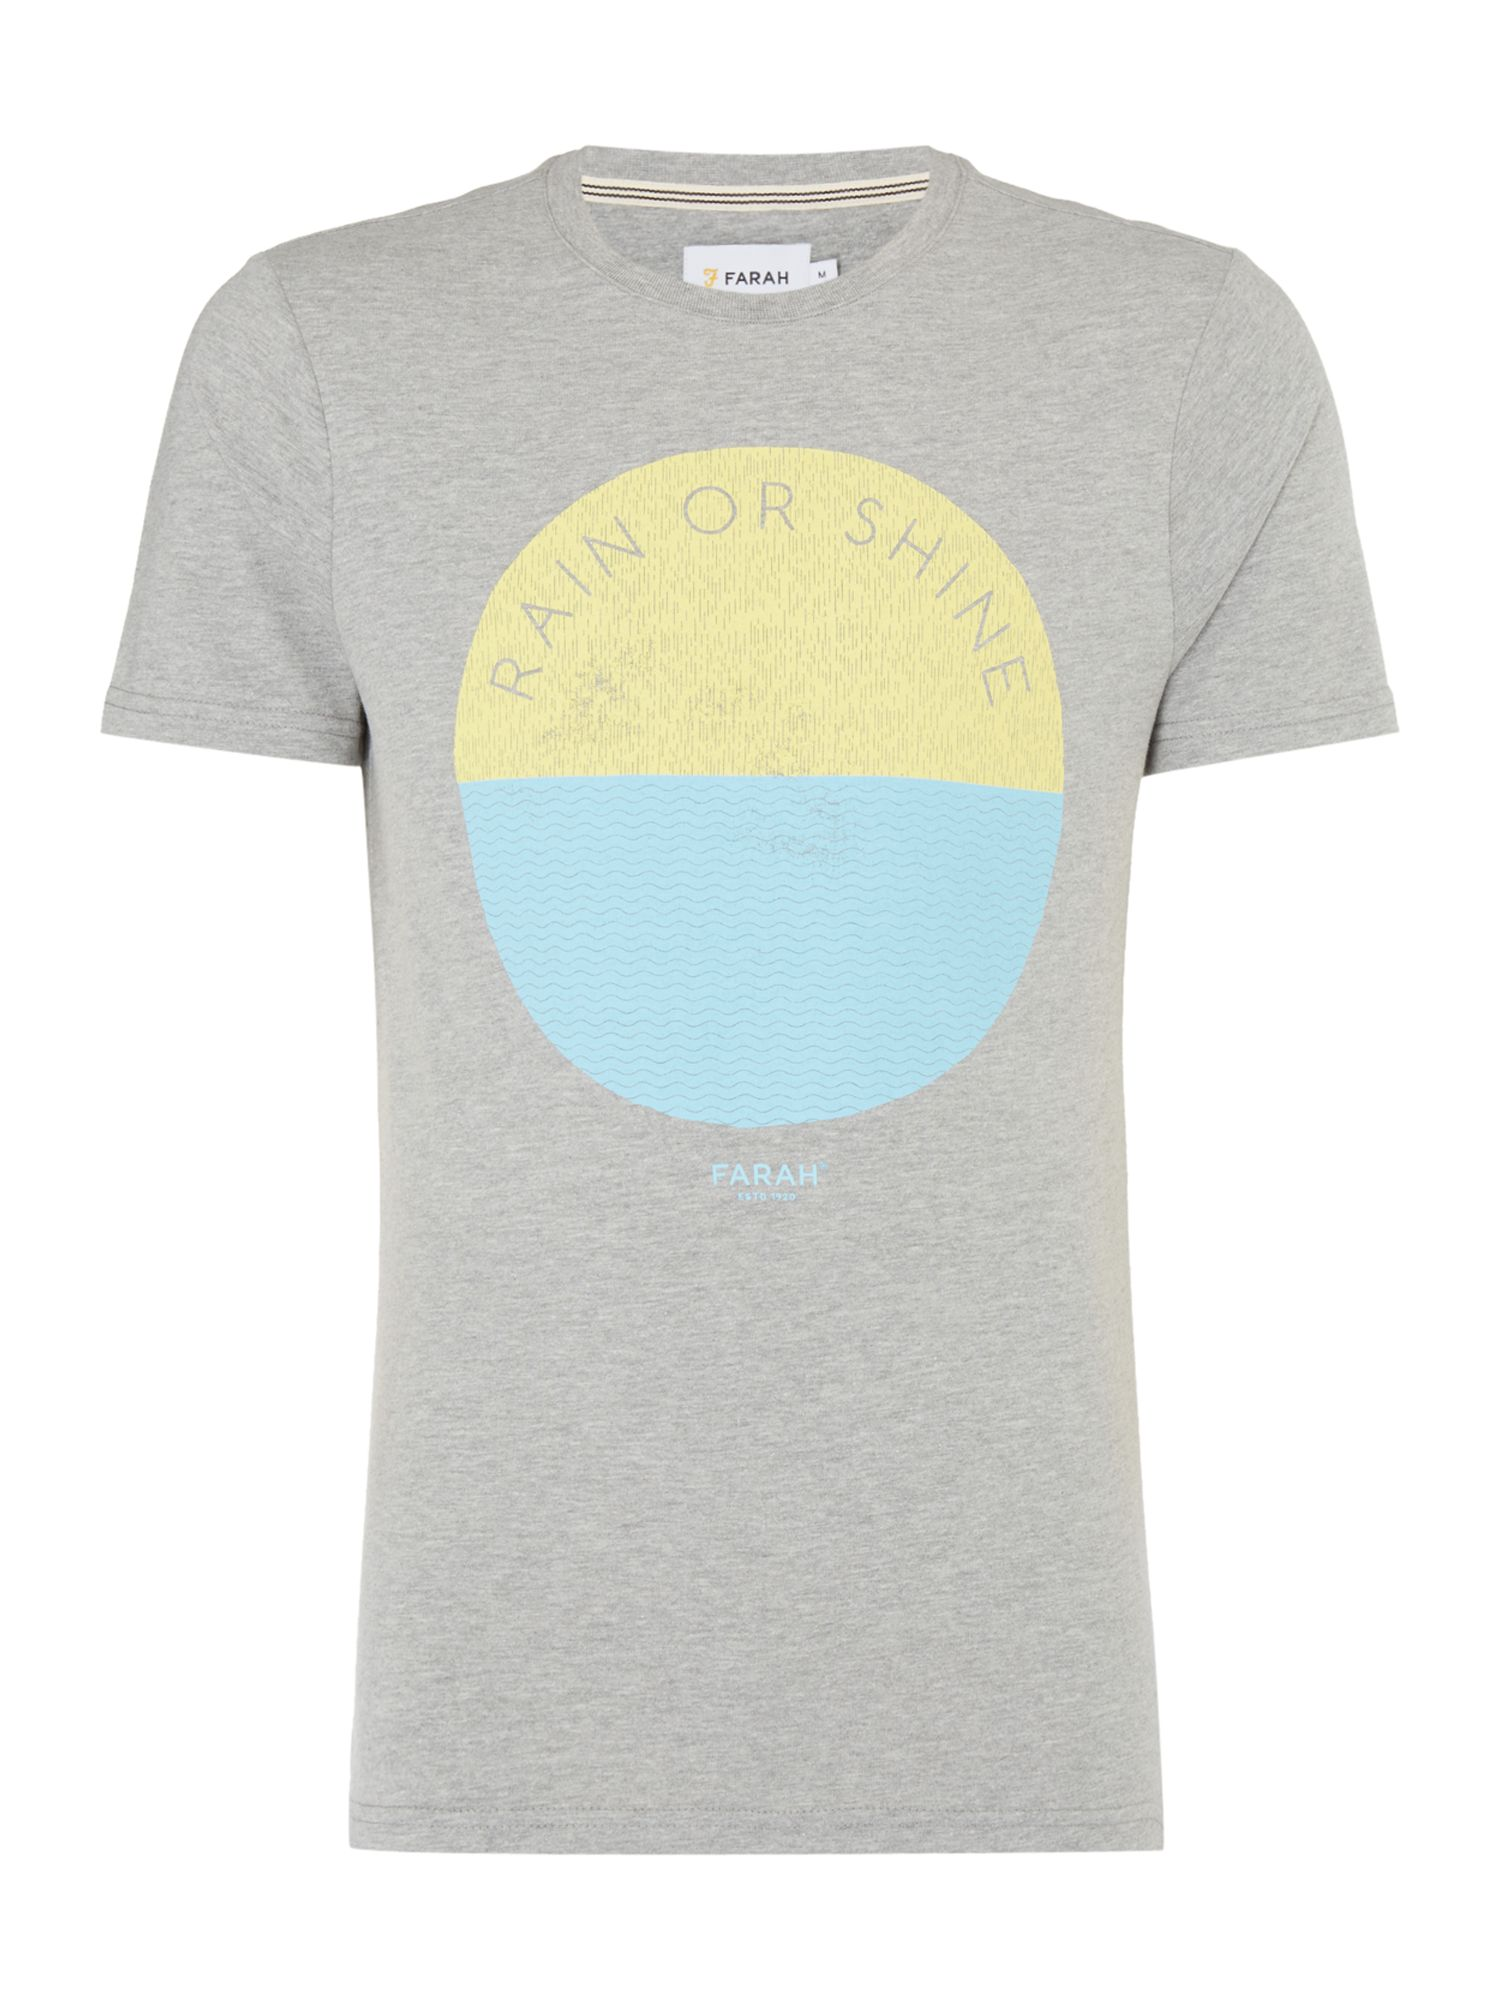 Men's Farah Pete Slim Fit Printed Tshirt, Grey Marl